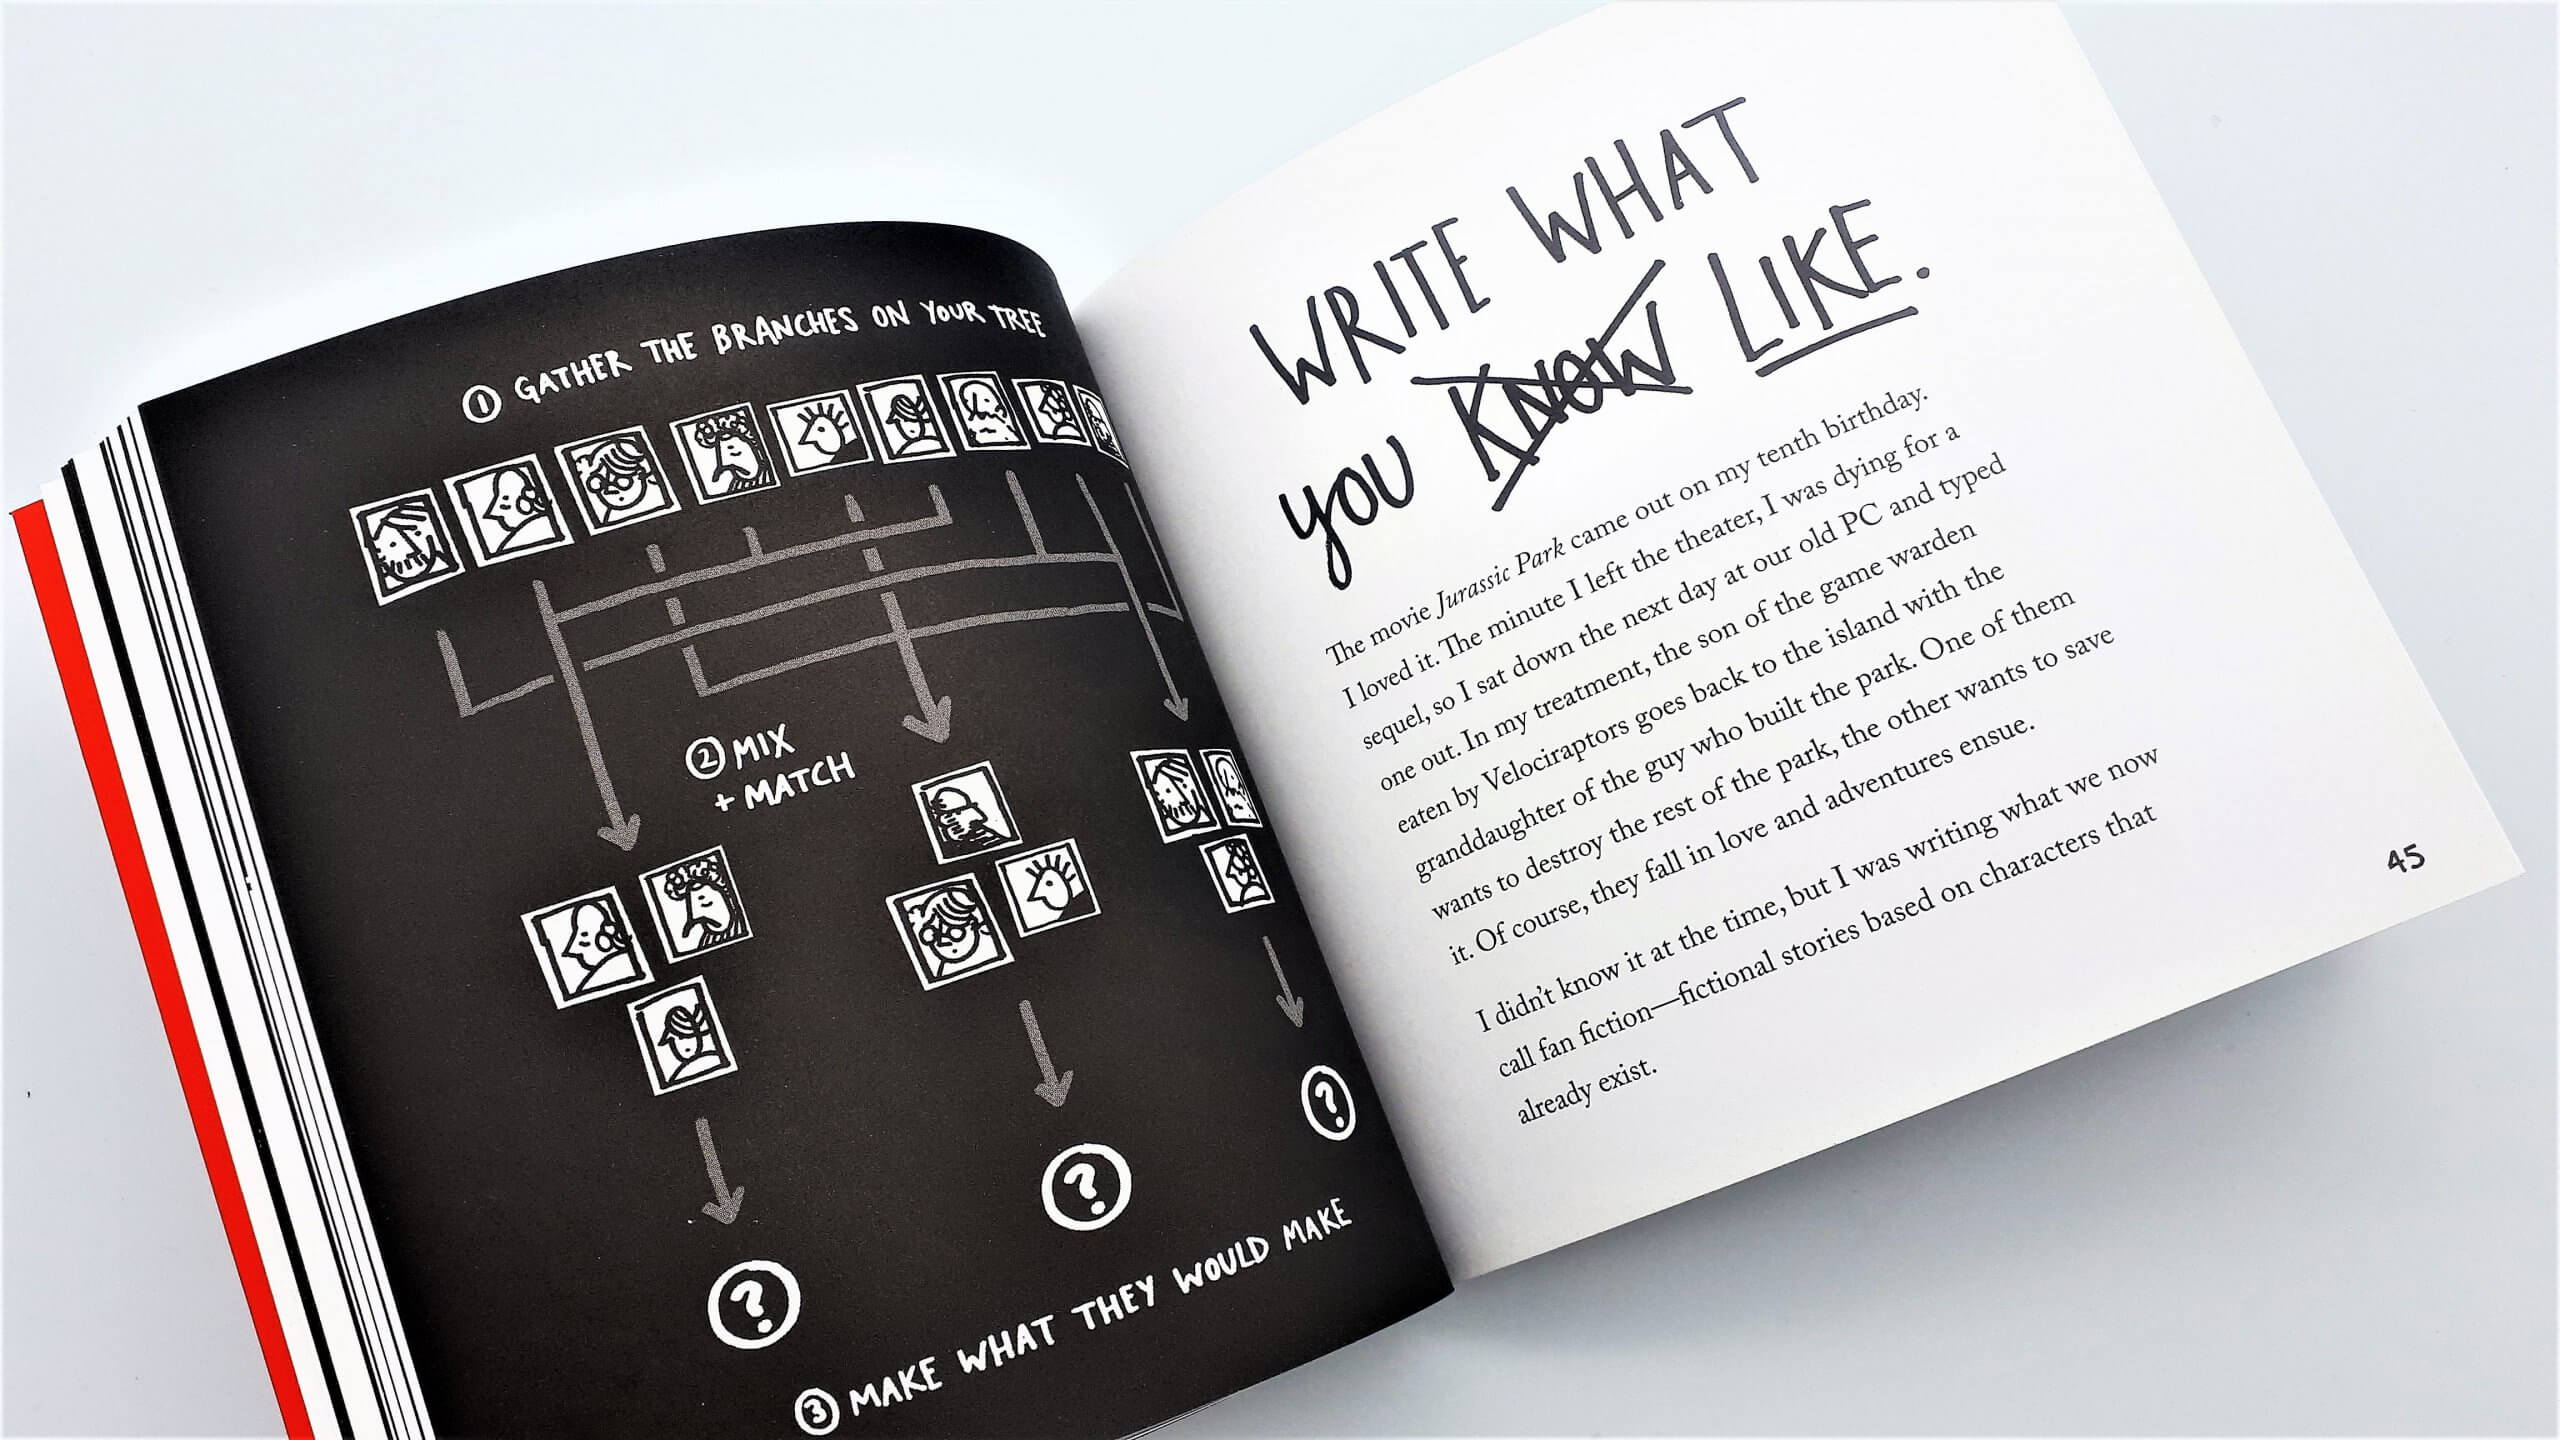 Steal Like an Artist by Austin Kleon - Book Review